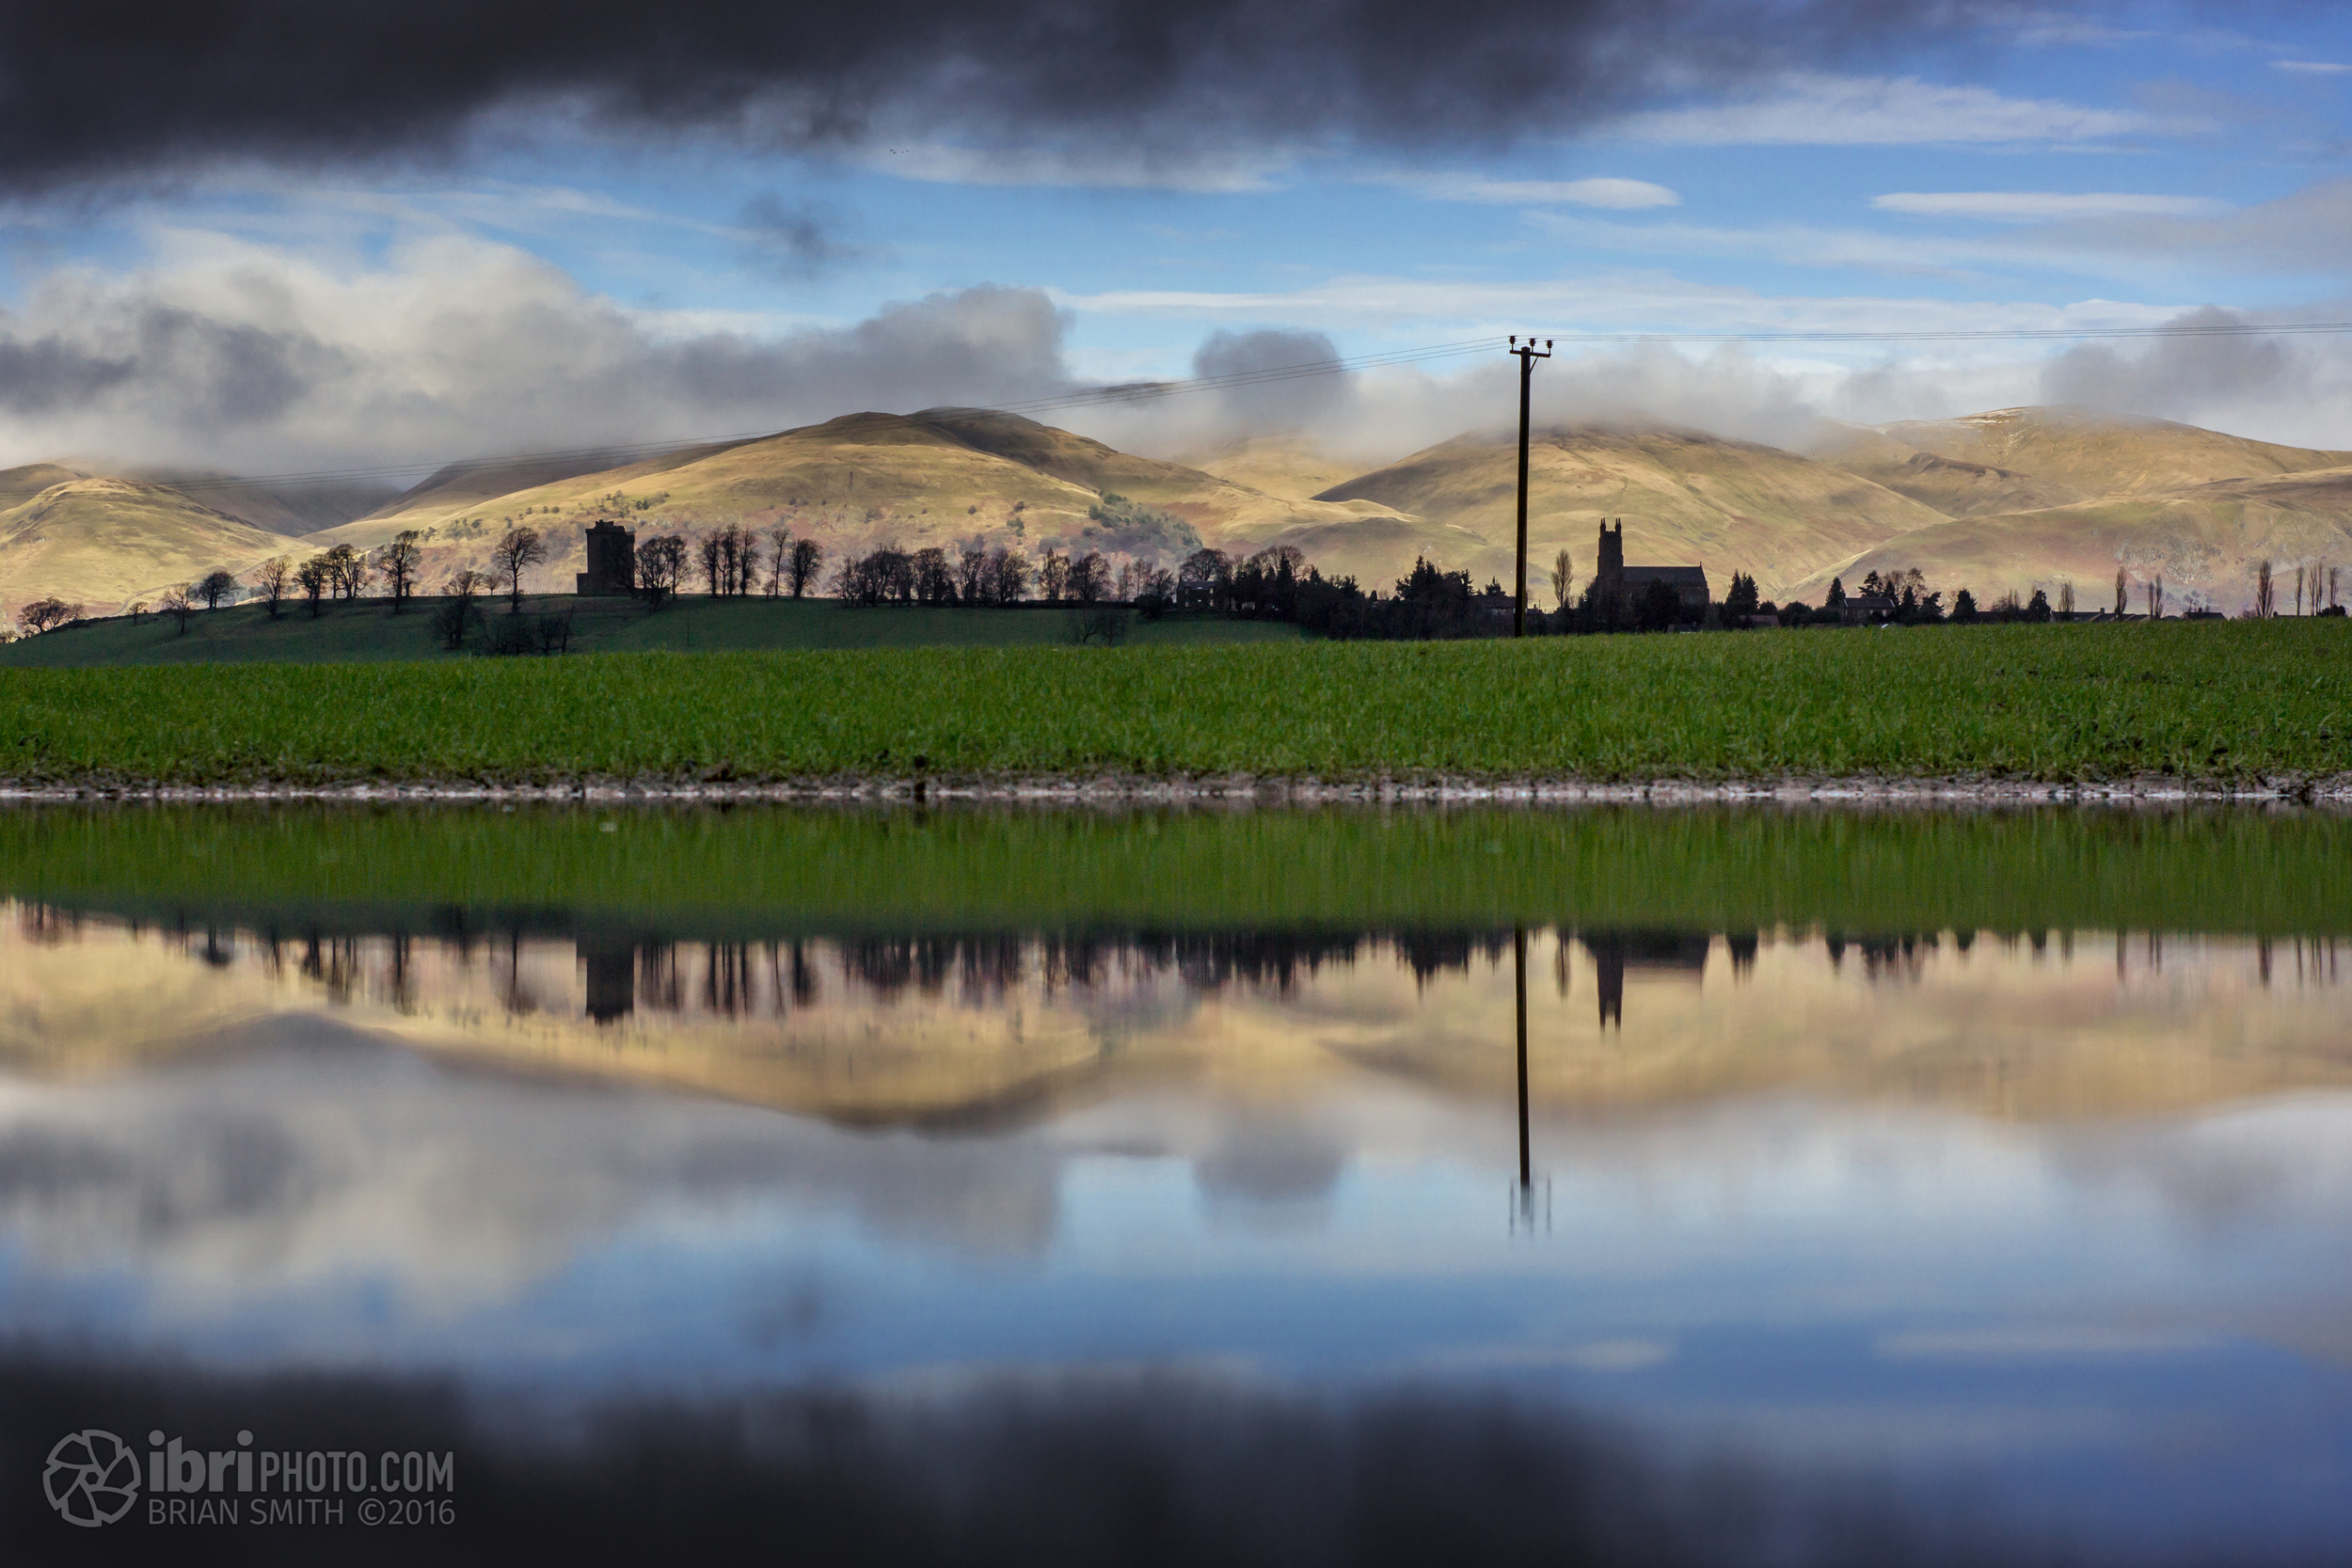 The silhouette of Clackmannan Tower and church reflected in a flooded field. Was nice to see the Ochils catching some rays though.